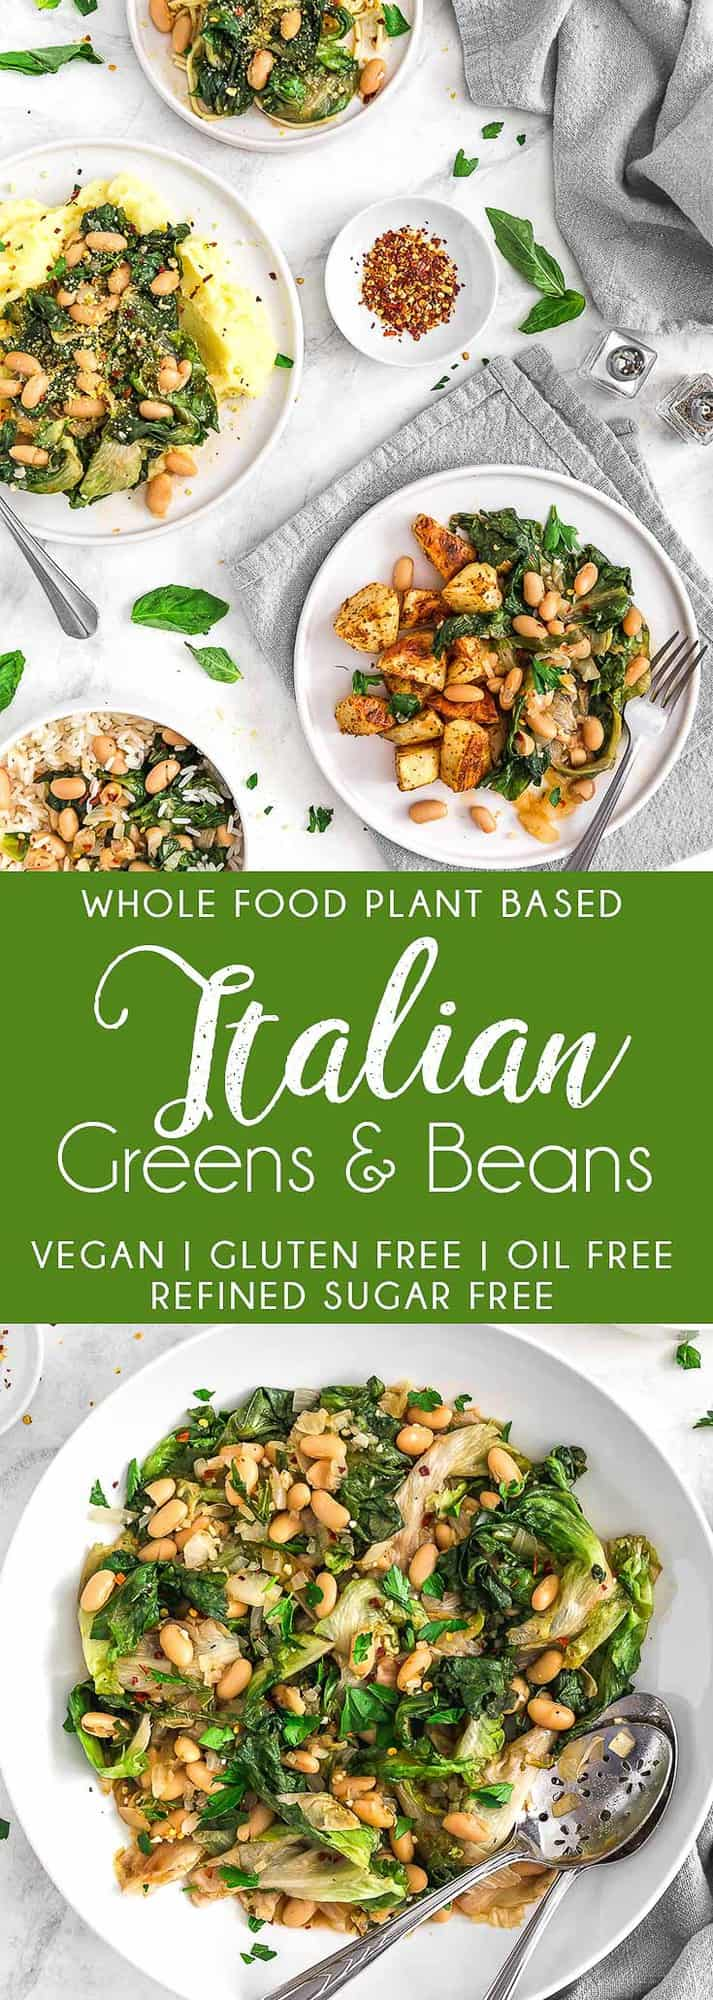 Italian Greens and Beans, greens, vegan greens recipe, plant based, vegan, vegetarian, whole food plant based, gluten free, recipe, wfpb, healthy, healthy vegan, oil free, no refined sugar, no oil, refined sugar free, dairy free, dinner, lunch, beans, legumes, greens, escarole, spinach, Swiss Chard